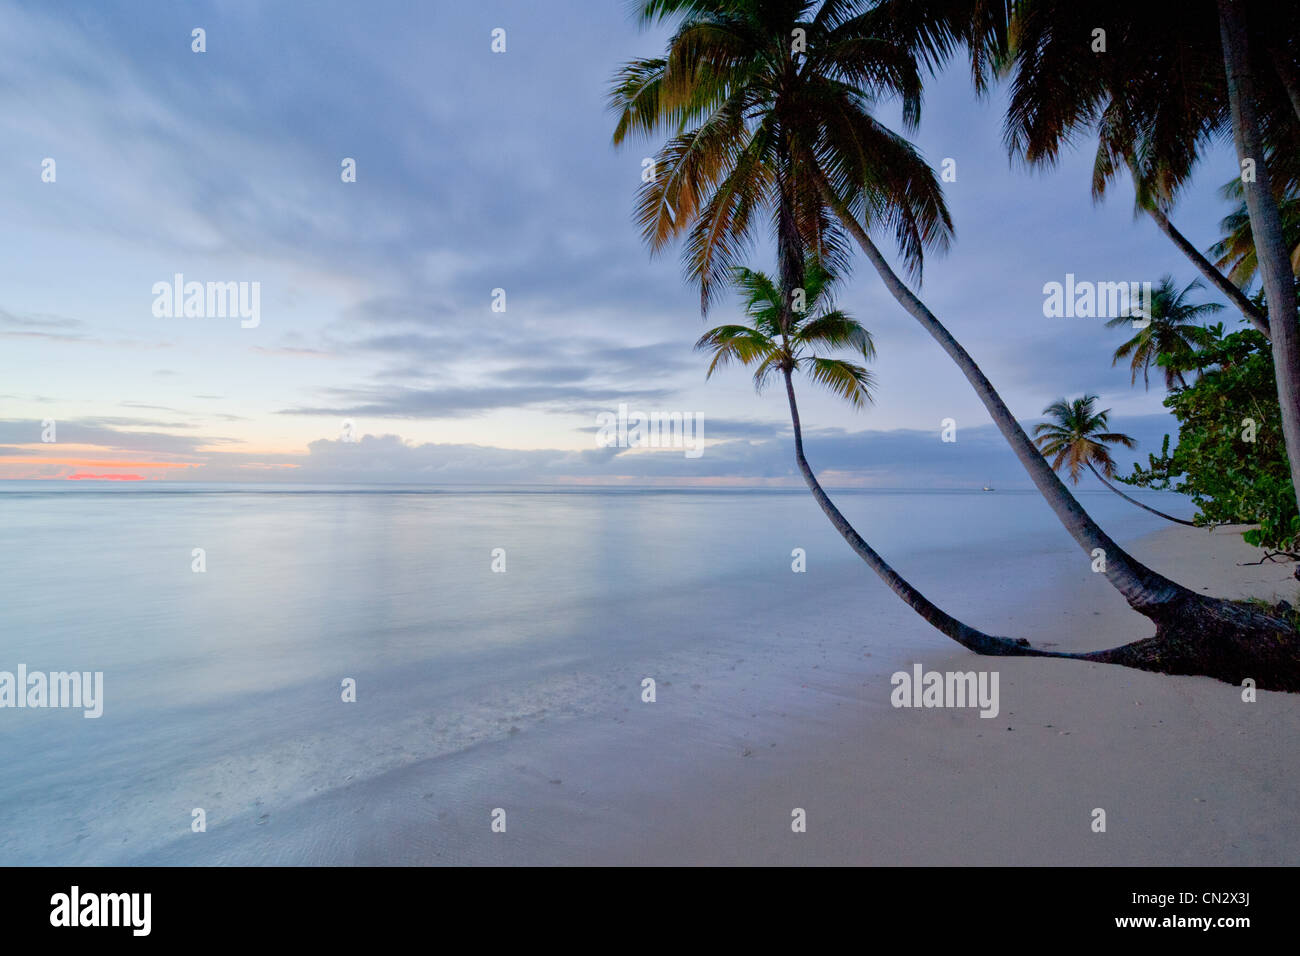 Pigeon Point beach at evening time, Tobago - Stock Image